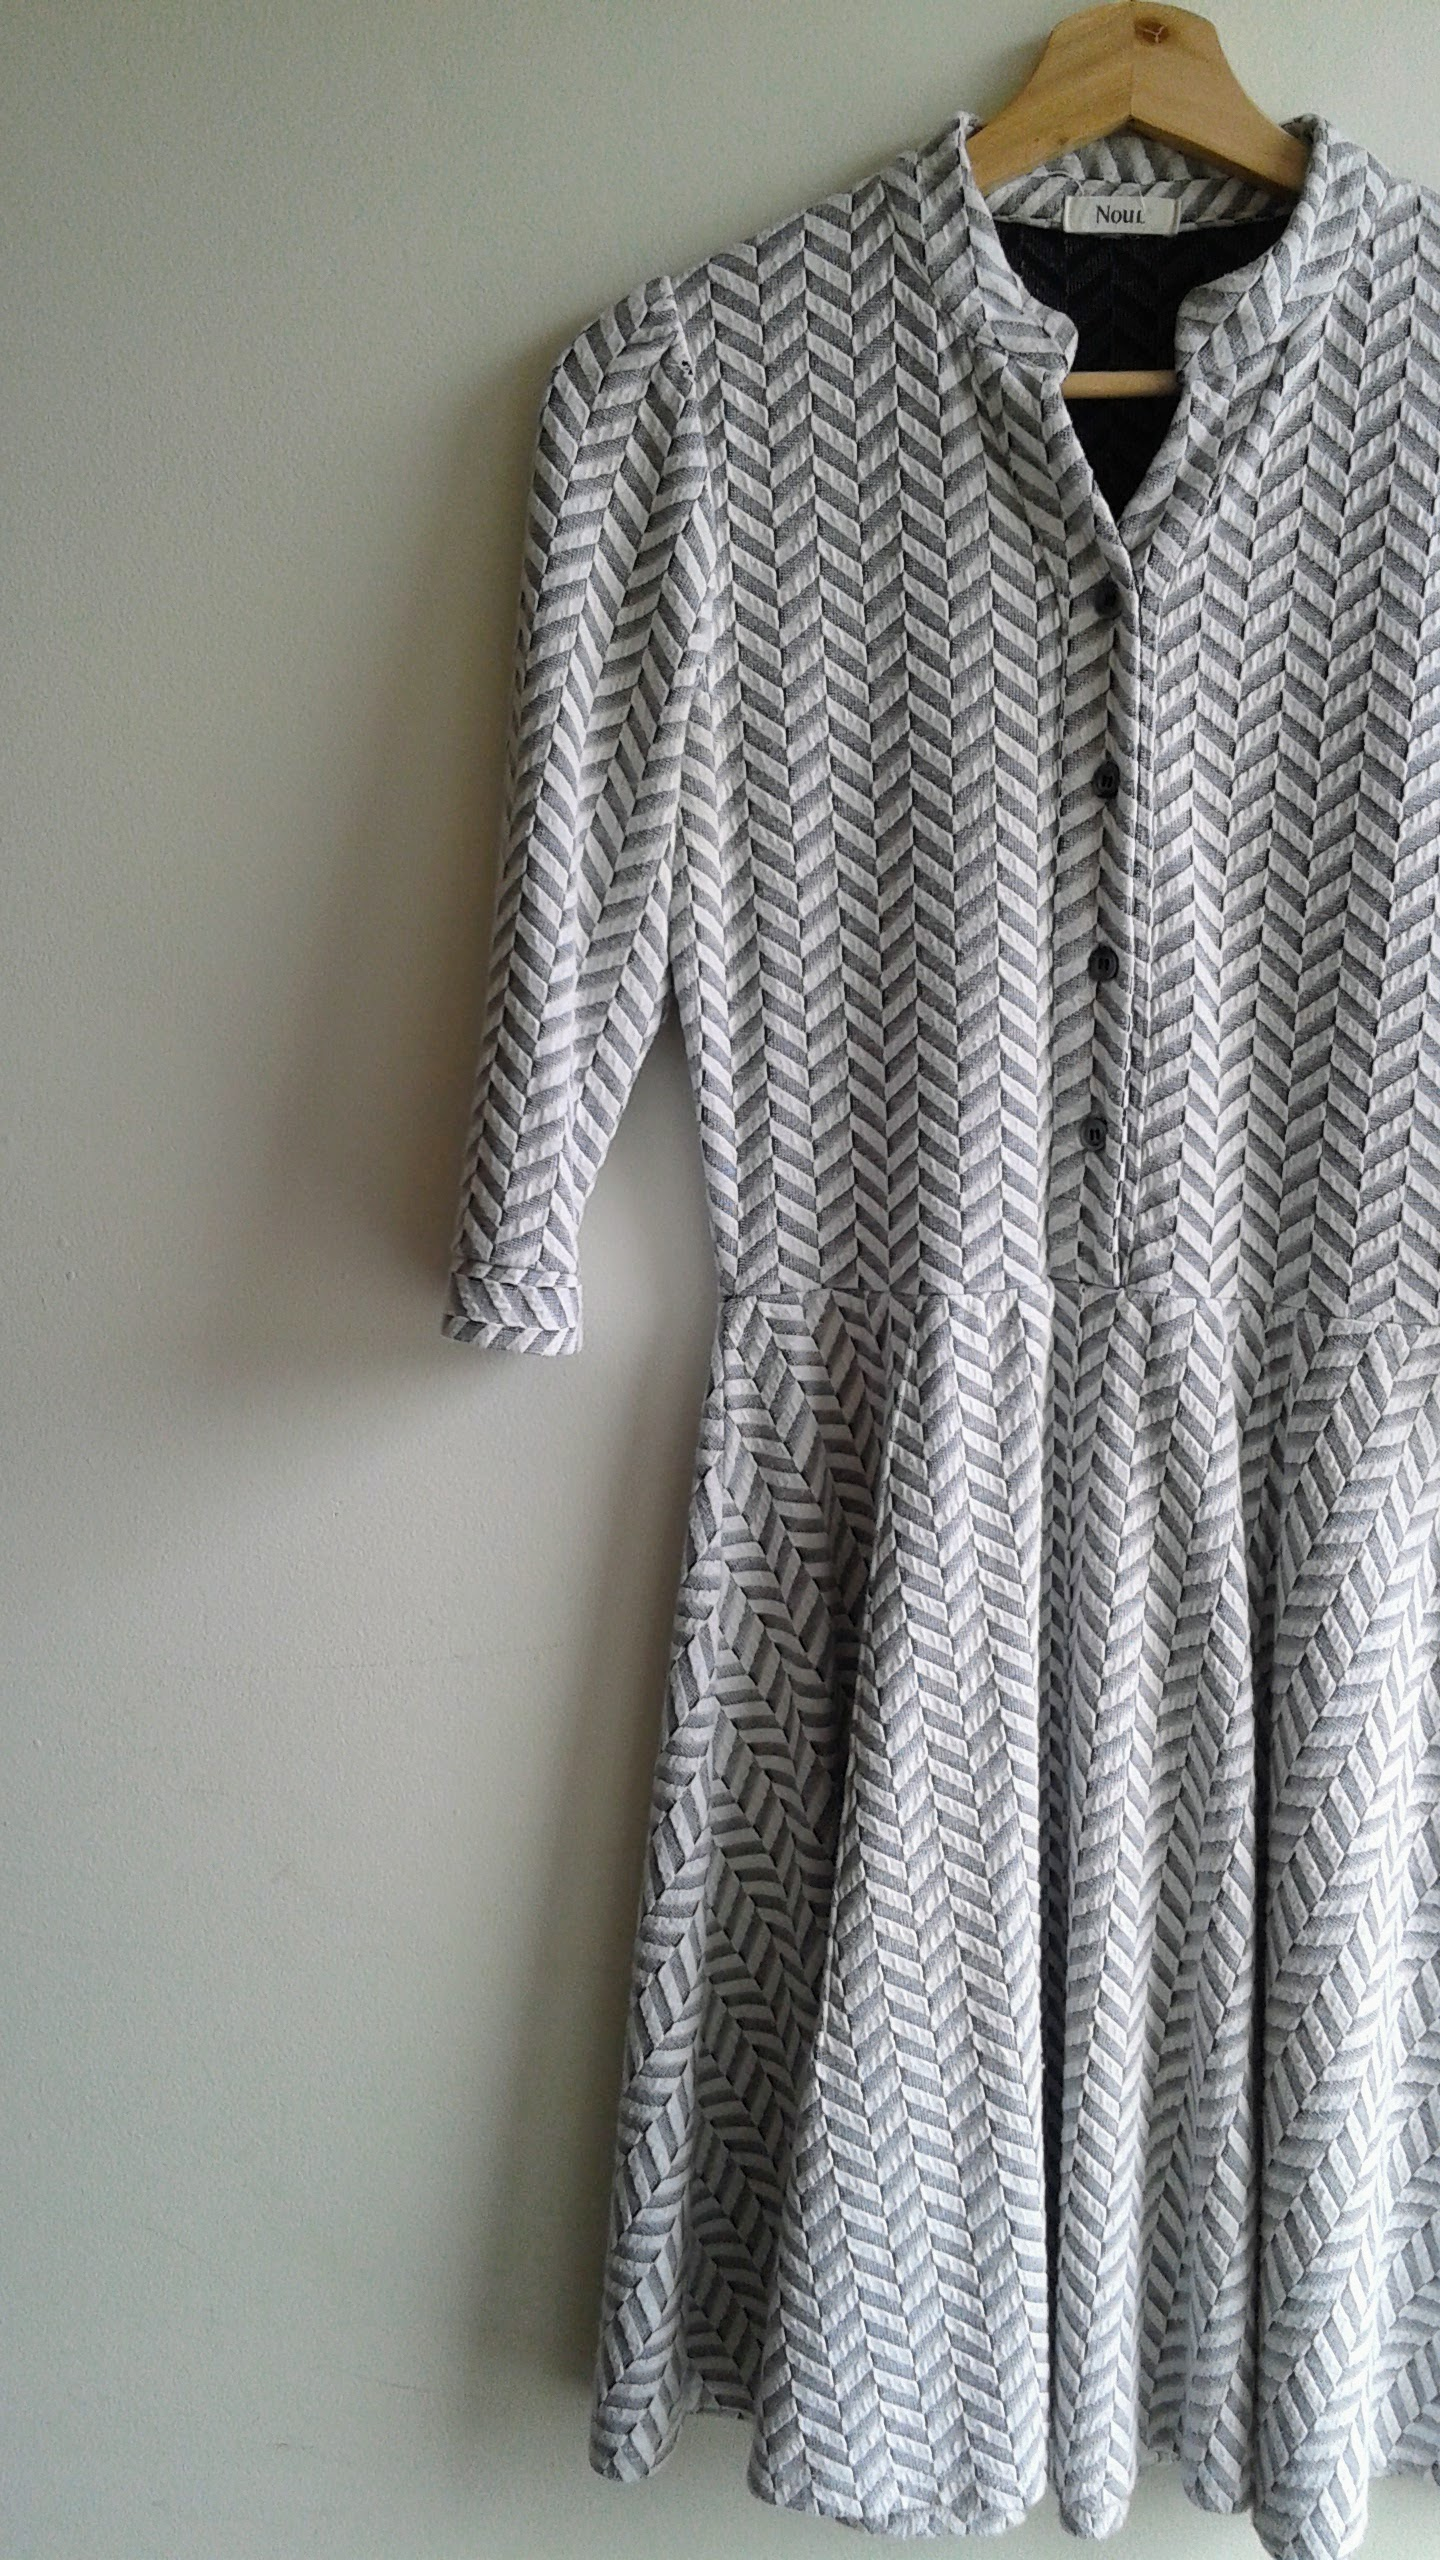 Noul dress; Size M, $46